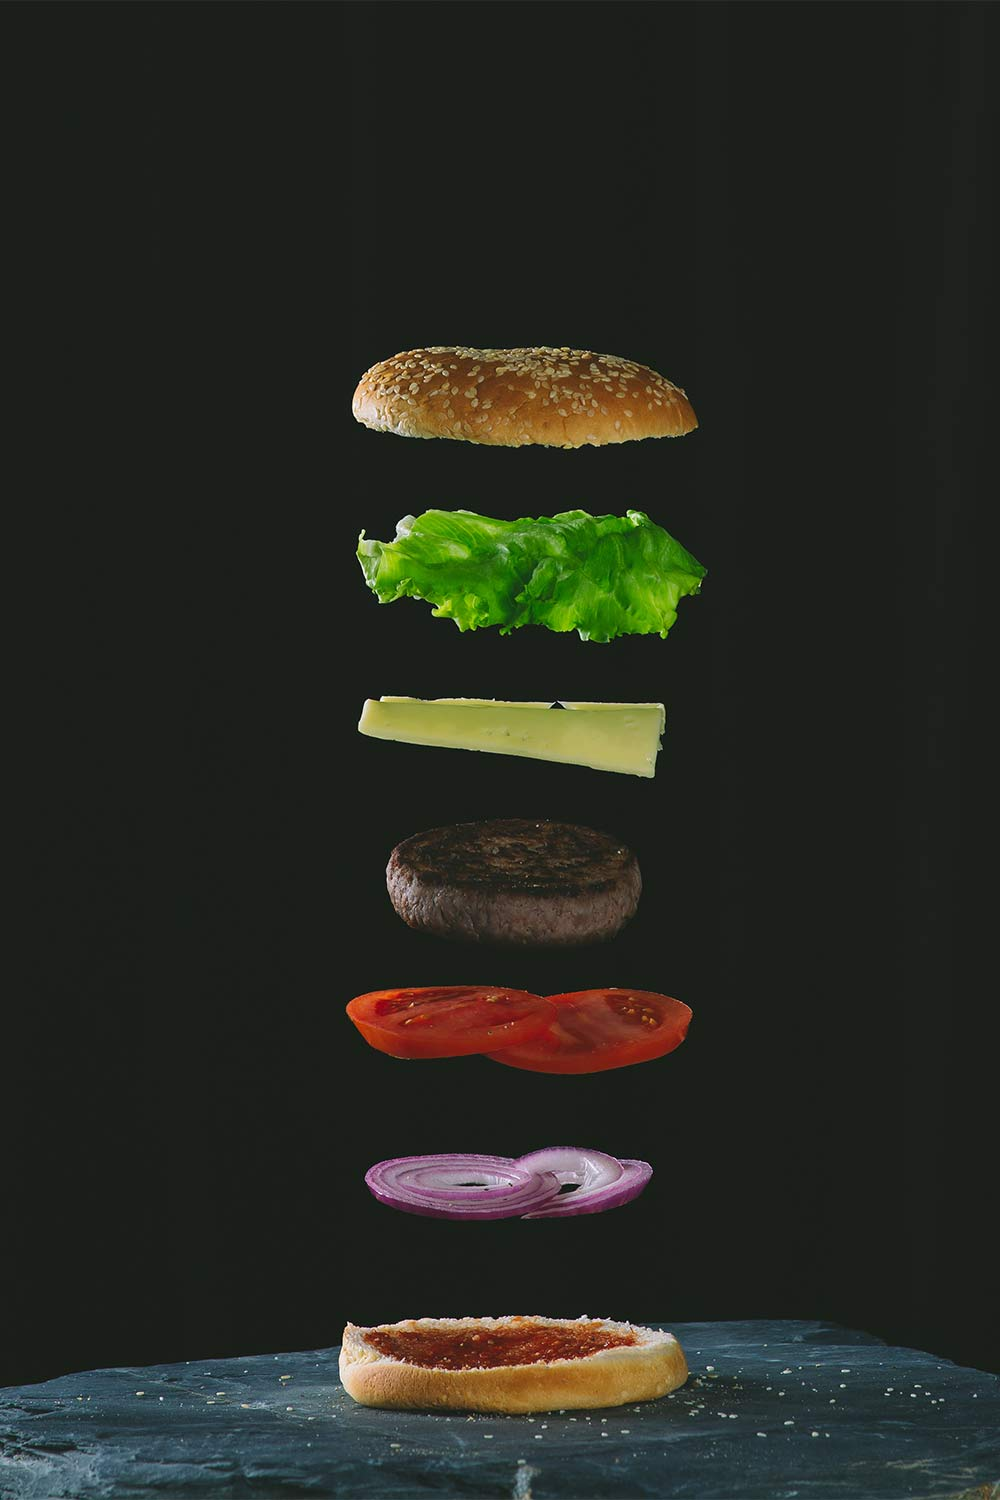 Surreal Food Photography of a burger